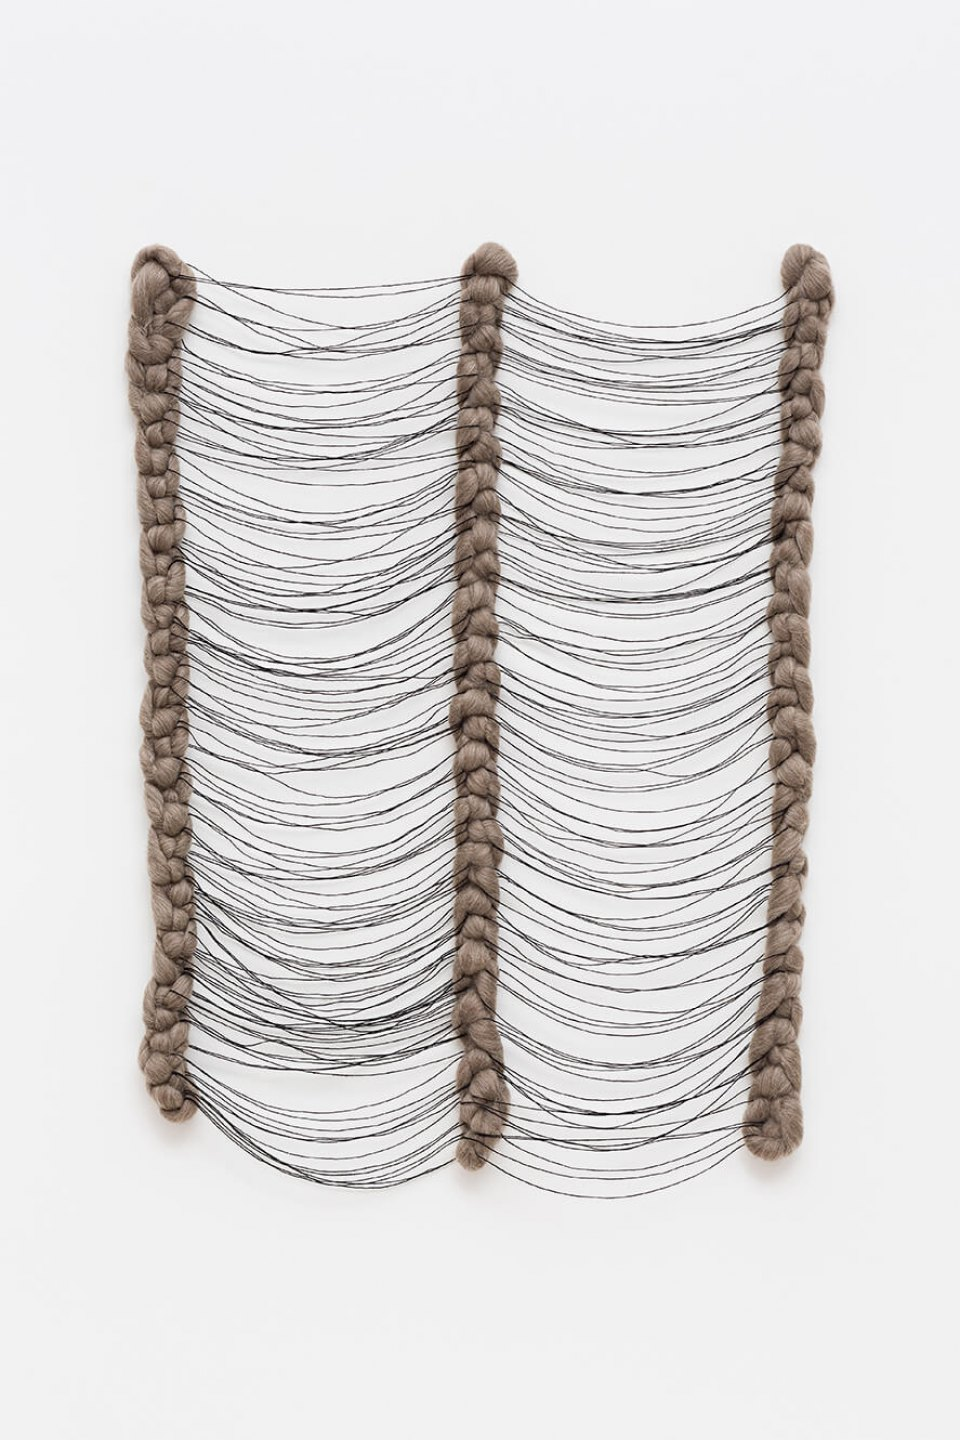 Paloma Bosquê, <em>Lapse #3</em>, 2015, wool and threads, 95 × 50 × 4 cm - Mendes Wood DM